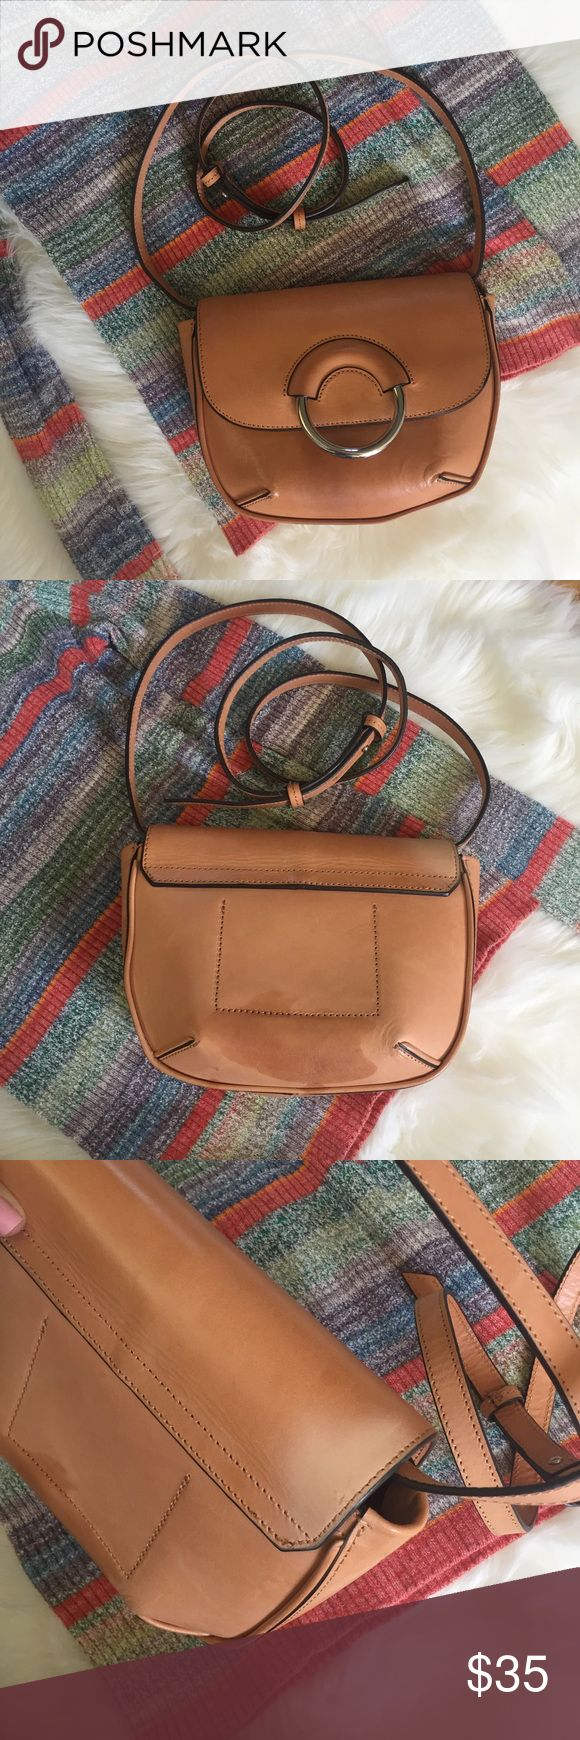 Leather Structured Crossbody Bag Banana Republic leather crossbody bag. Some light and dark spots on the bag but in overall good condition. Strap is adjustable. NO TRADES Banana Republic Bags Crossbody Bags